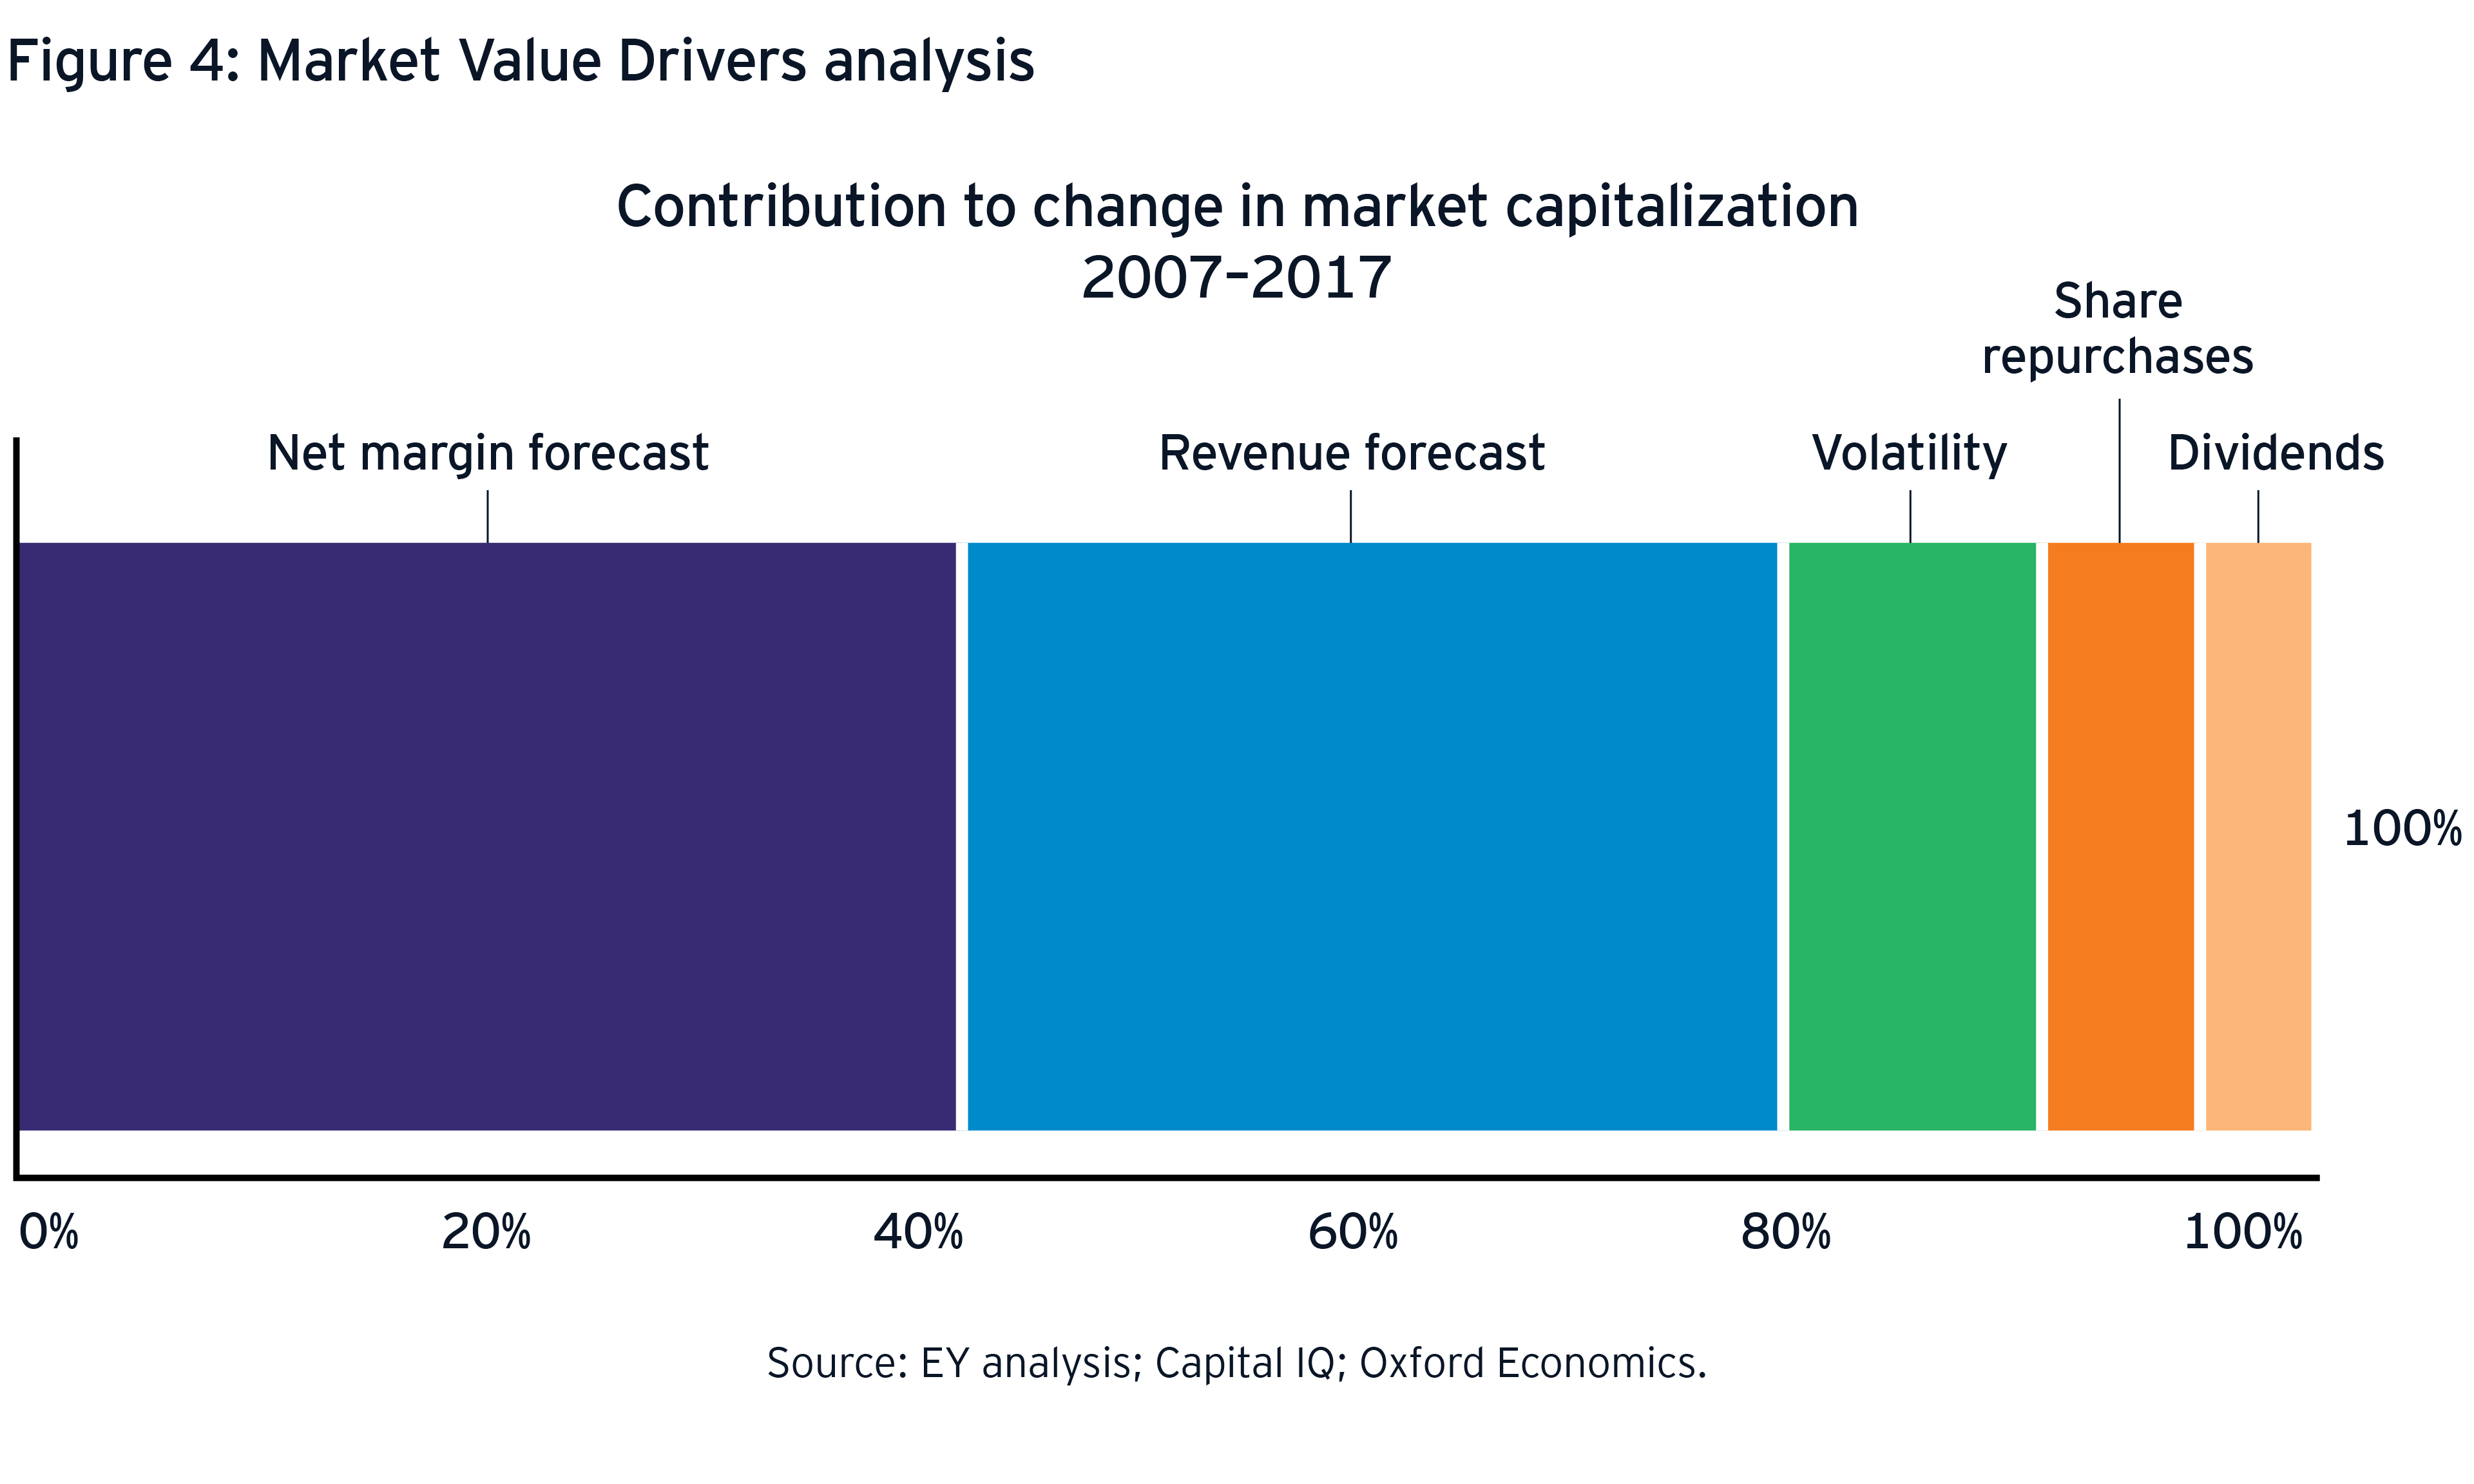 Market value drivers analysis graph